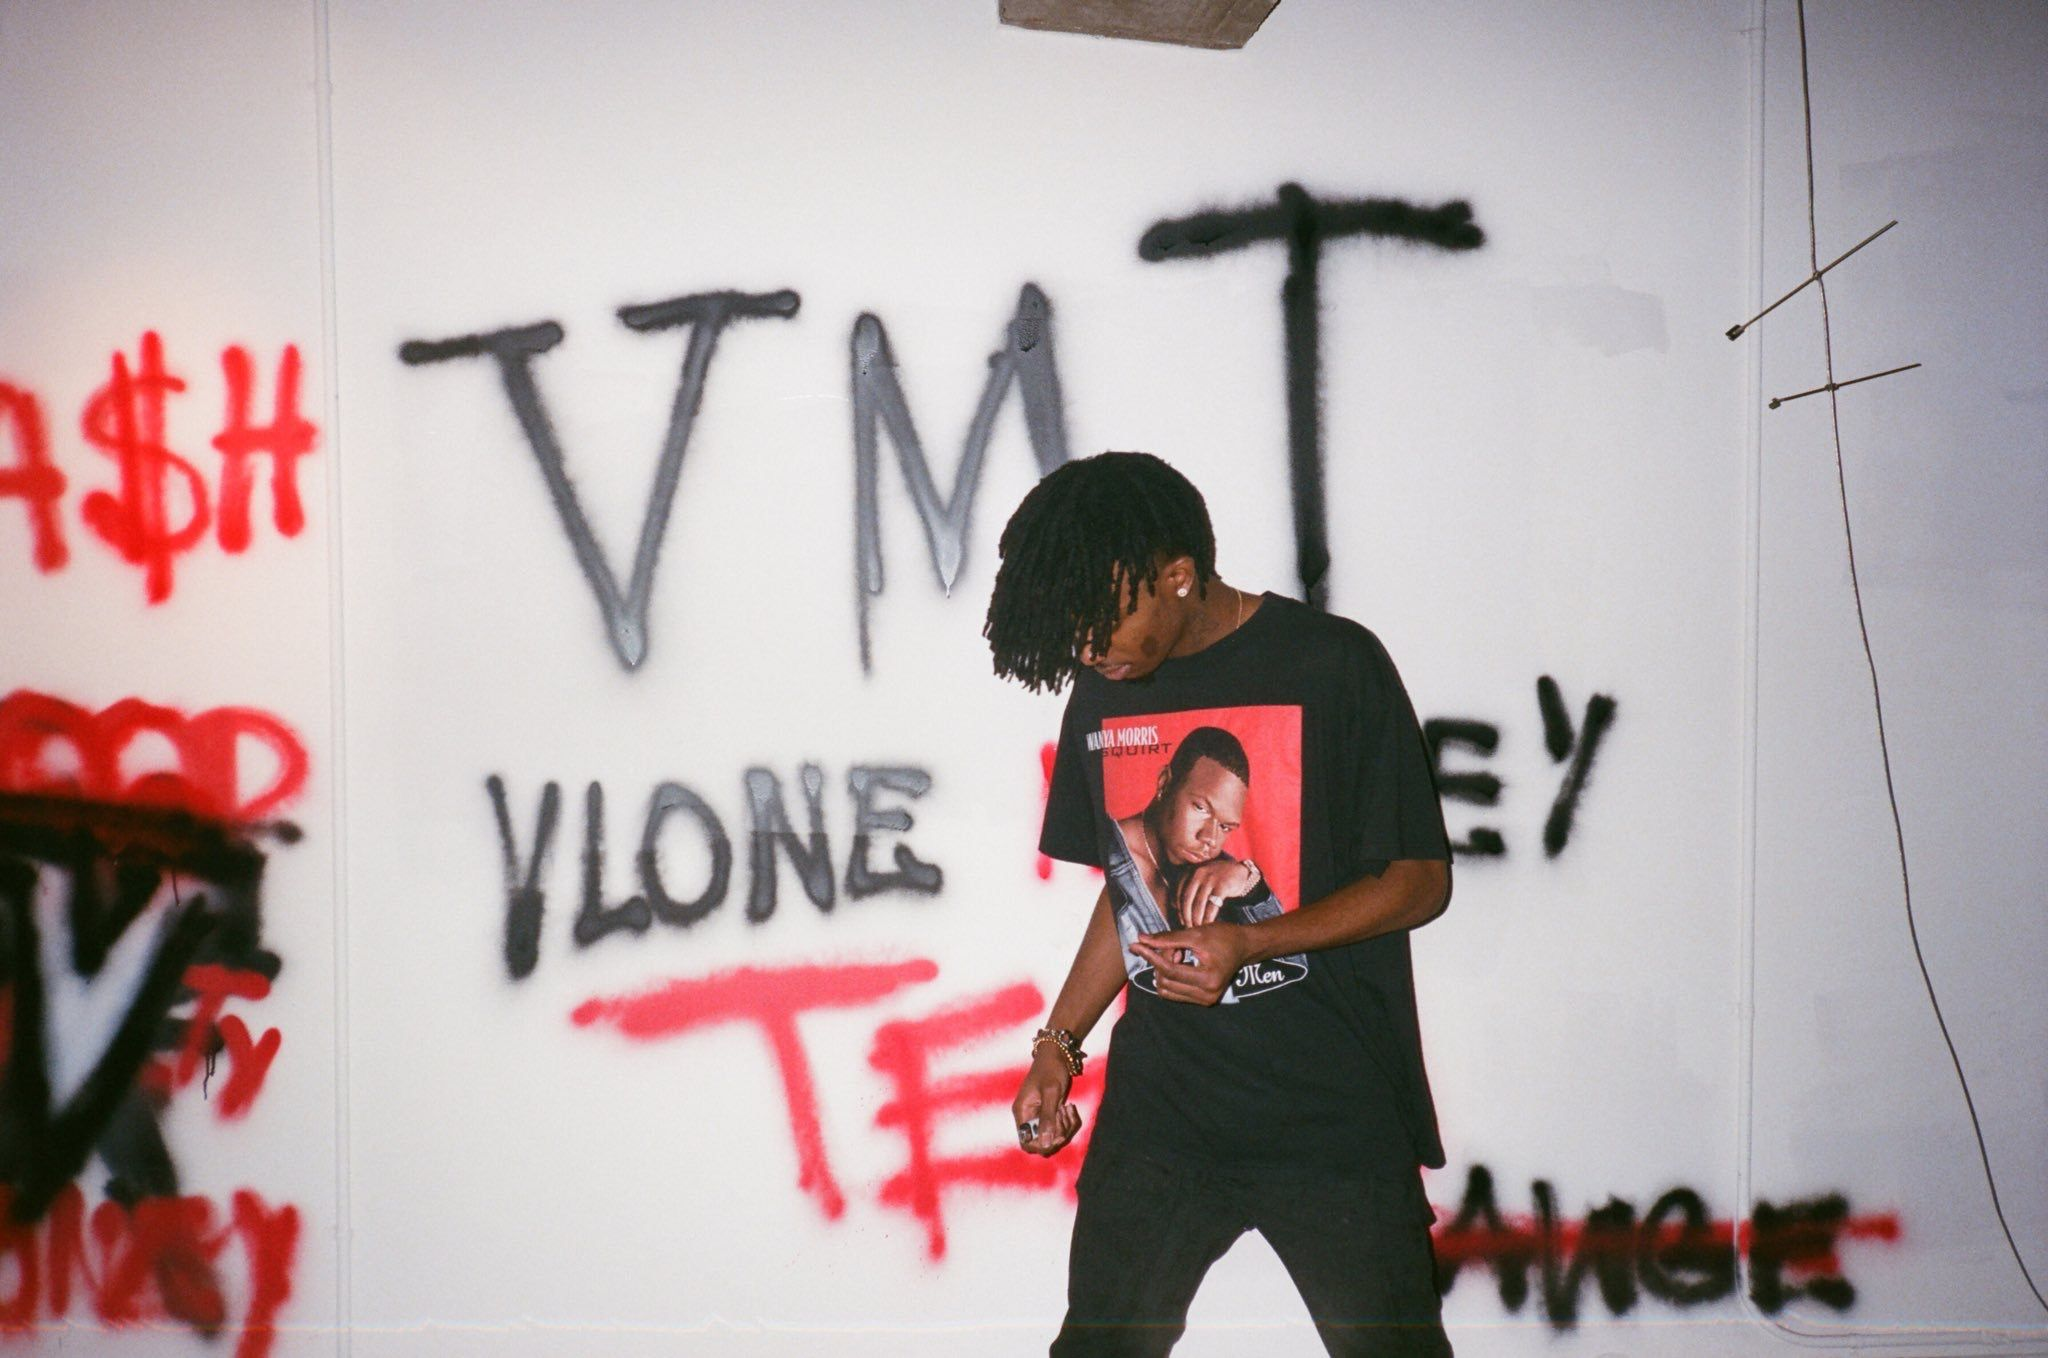 VLONE MONEY TEAM in 2019 Rap, Rapper, Hip hop